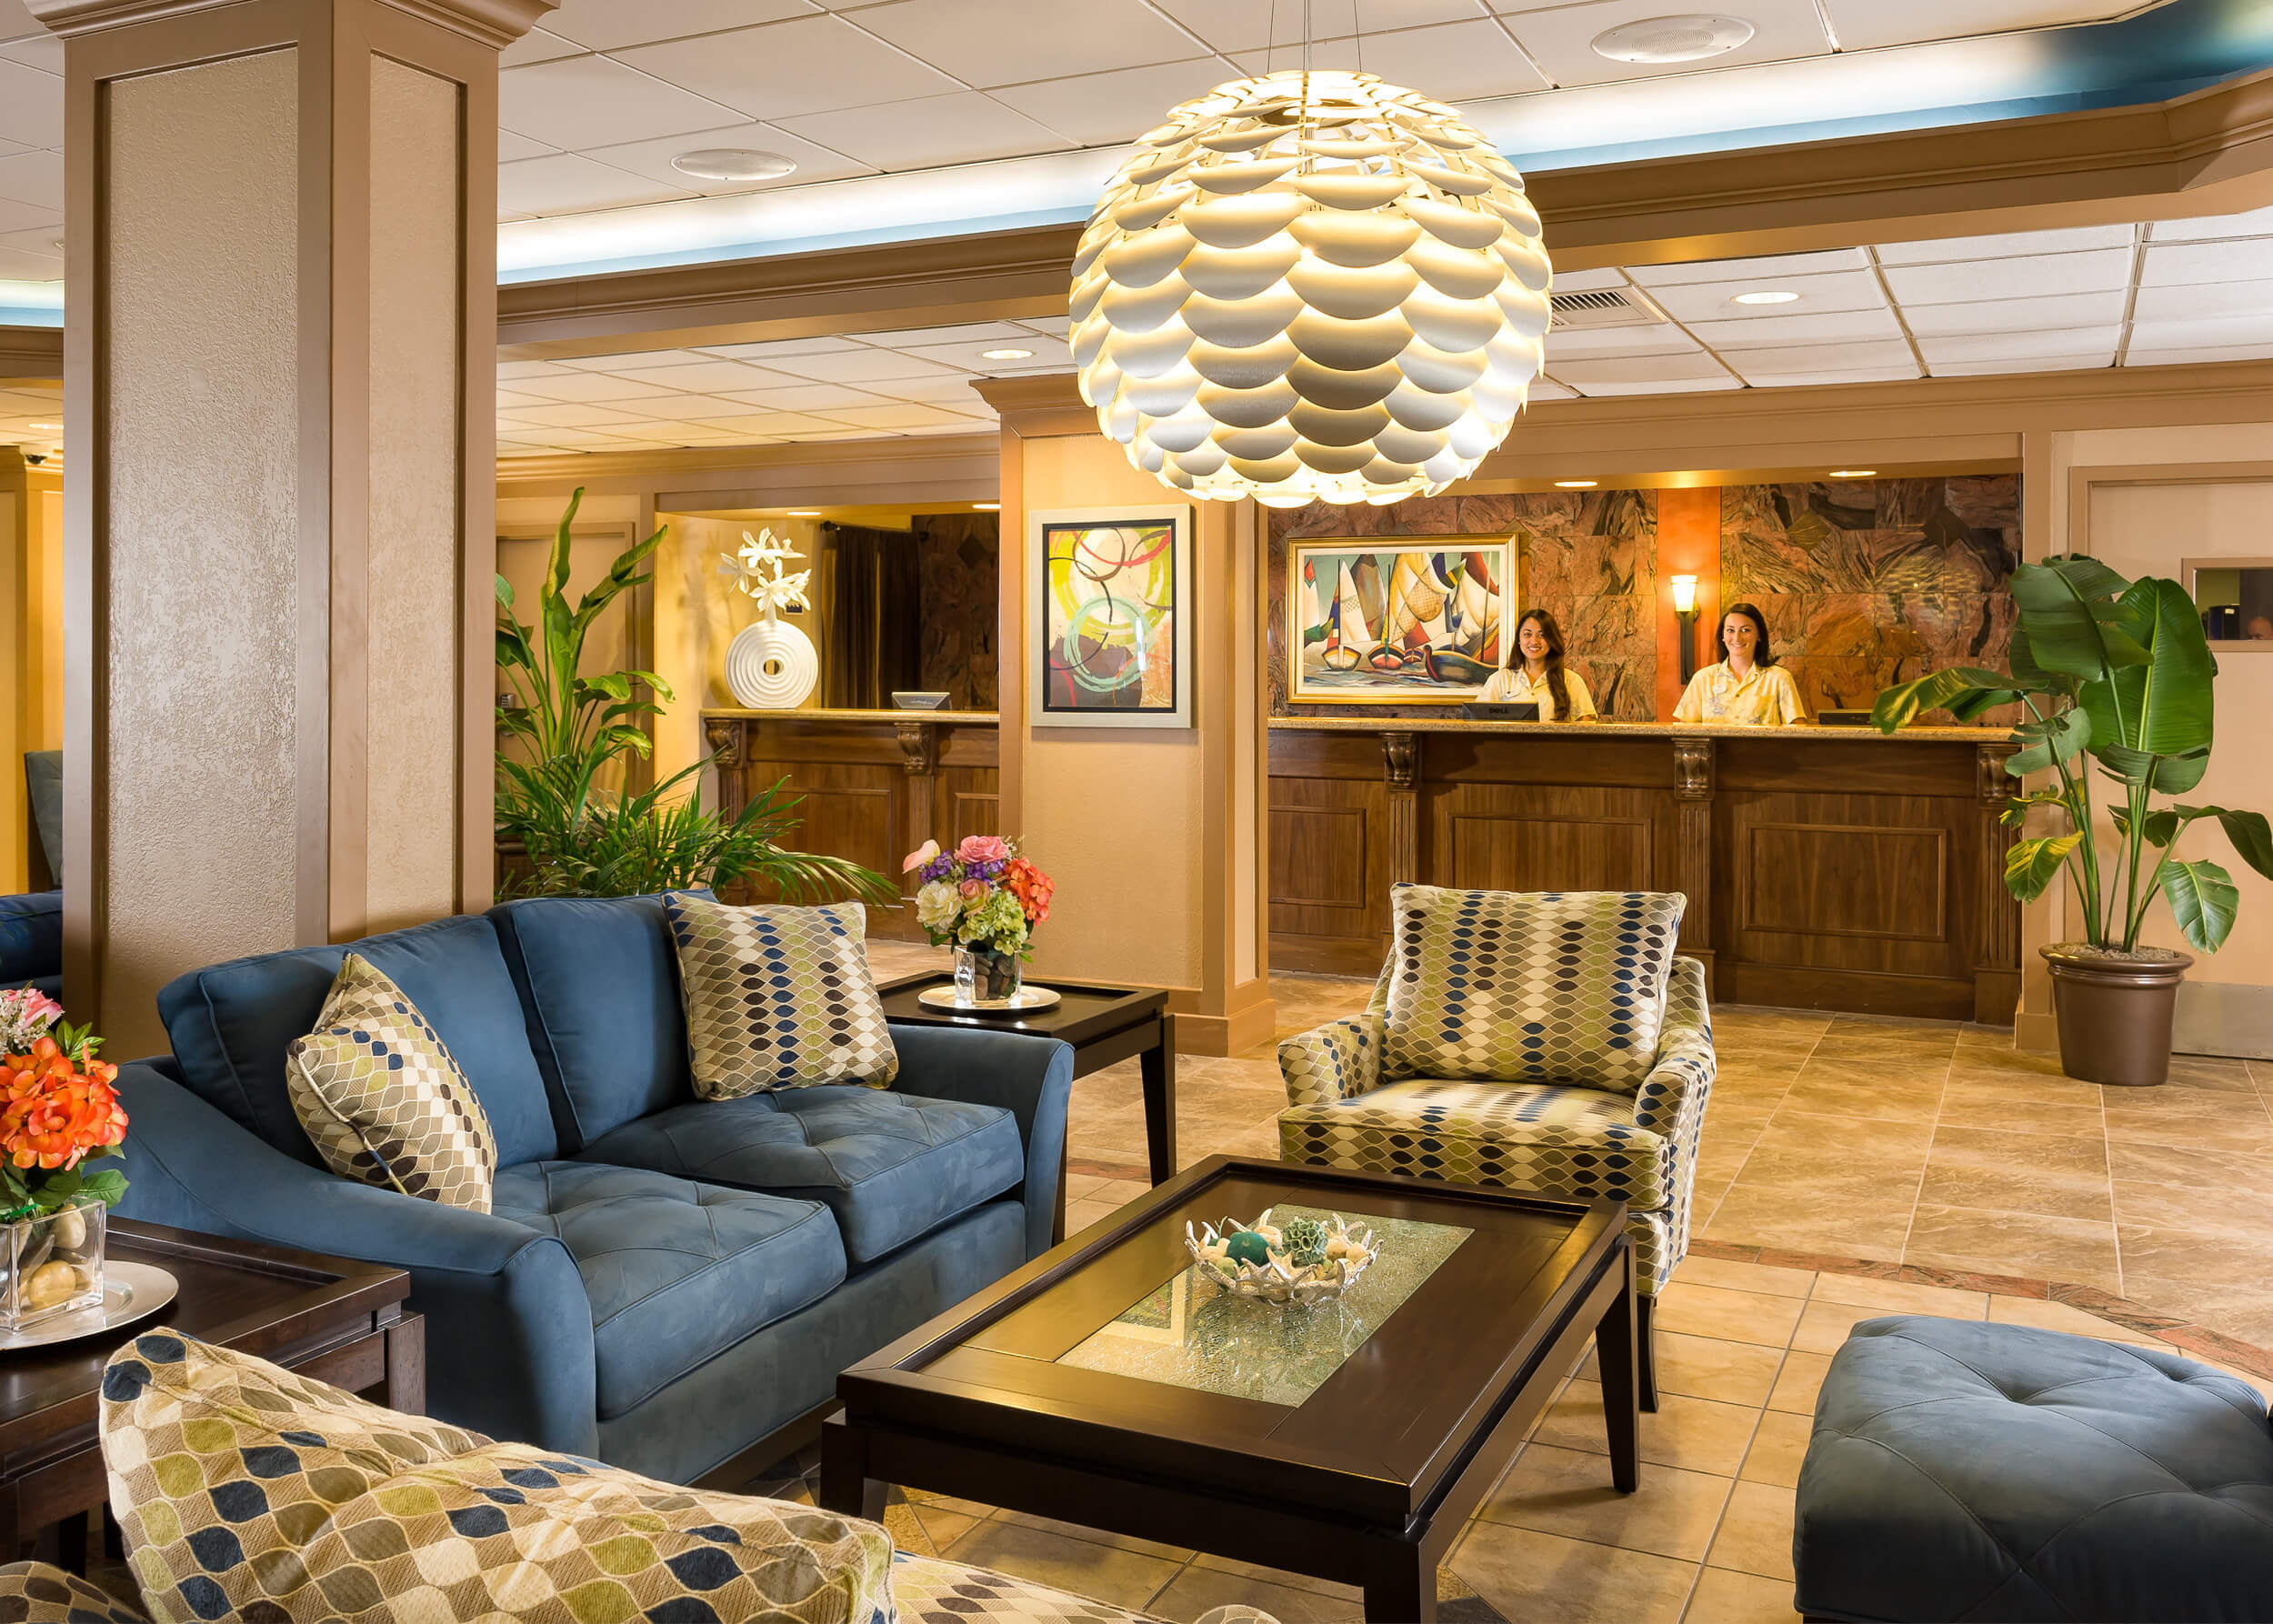 Lobby and front desk at Myrtle Beach resort | Westgate Myrtle Beach Oceanfront Resort